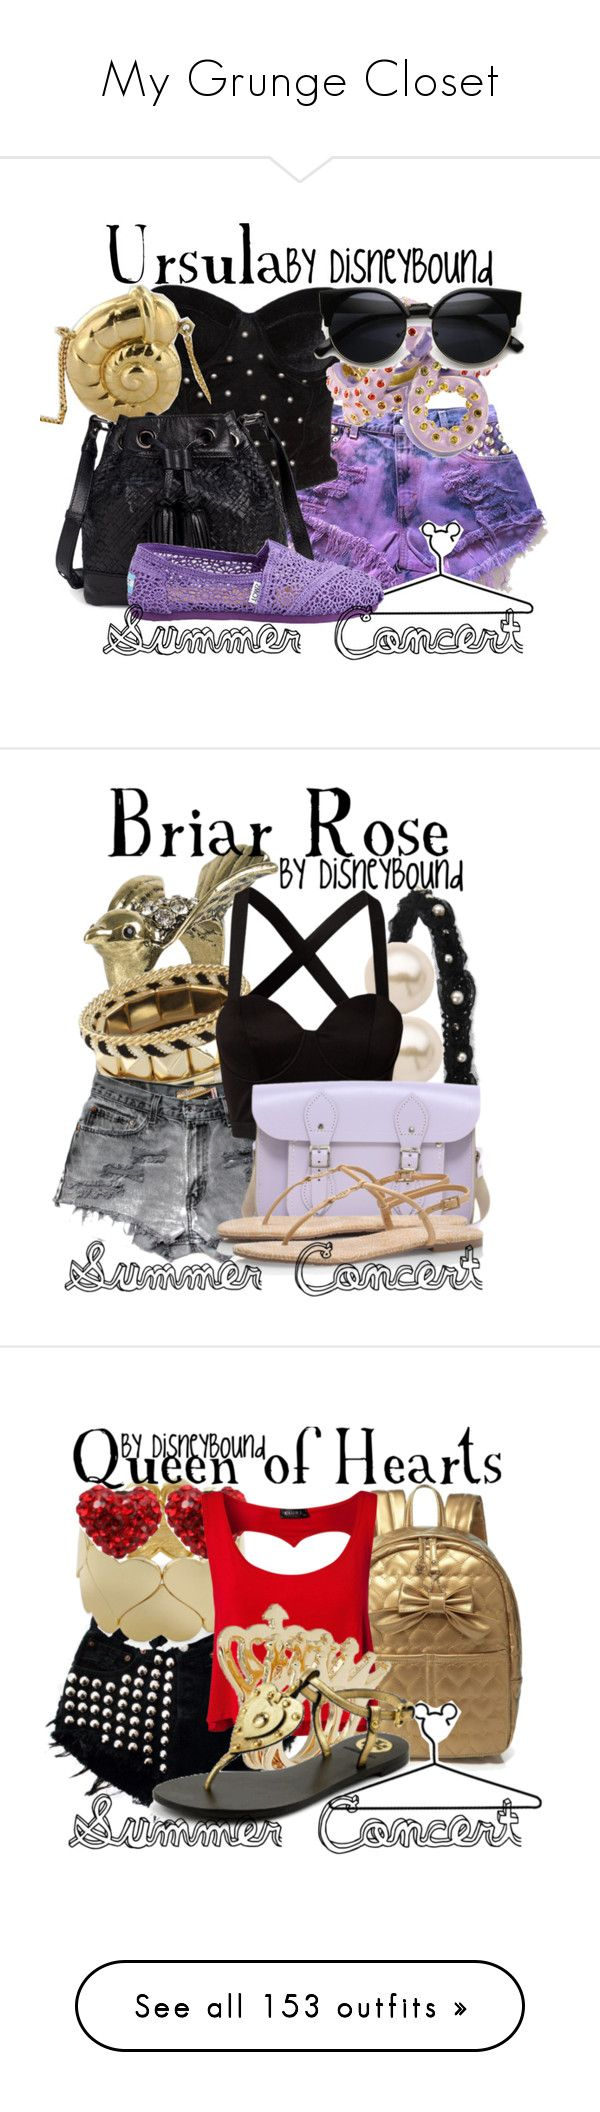 My Grunge Closet by paris-star on Polyvore featuring polyvore, fashion, style, Reverse, Elliott Lucca, Disney, TOMS, clothing, disney, Forever 21, NLY Accessories, ALDO, Levi's, Juliet & Company, Mimi Blix For Nelly, The Cambridge Satchel Company, Tory Burch, Tresor Paris, Club L, Topshop, Thierry Mugler, Isharya, Full Tilt, White House Black Market, H&M, Witchery, Cut N' Paste, Saint Tropez, Pull&Bear, King Baby Studio, Accessorize, Dorothy Perkins, Amrita Singh, Akira, MICHAEL Michael…